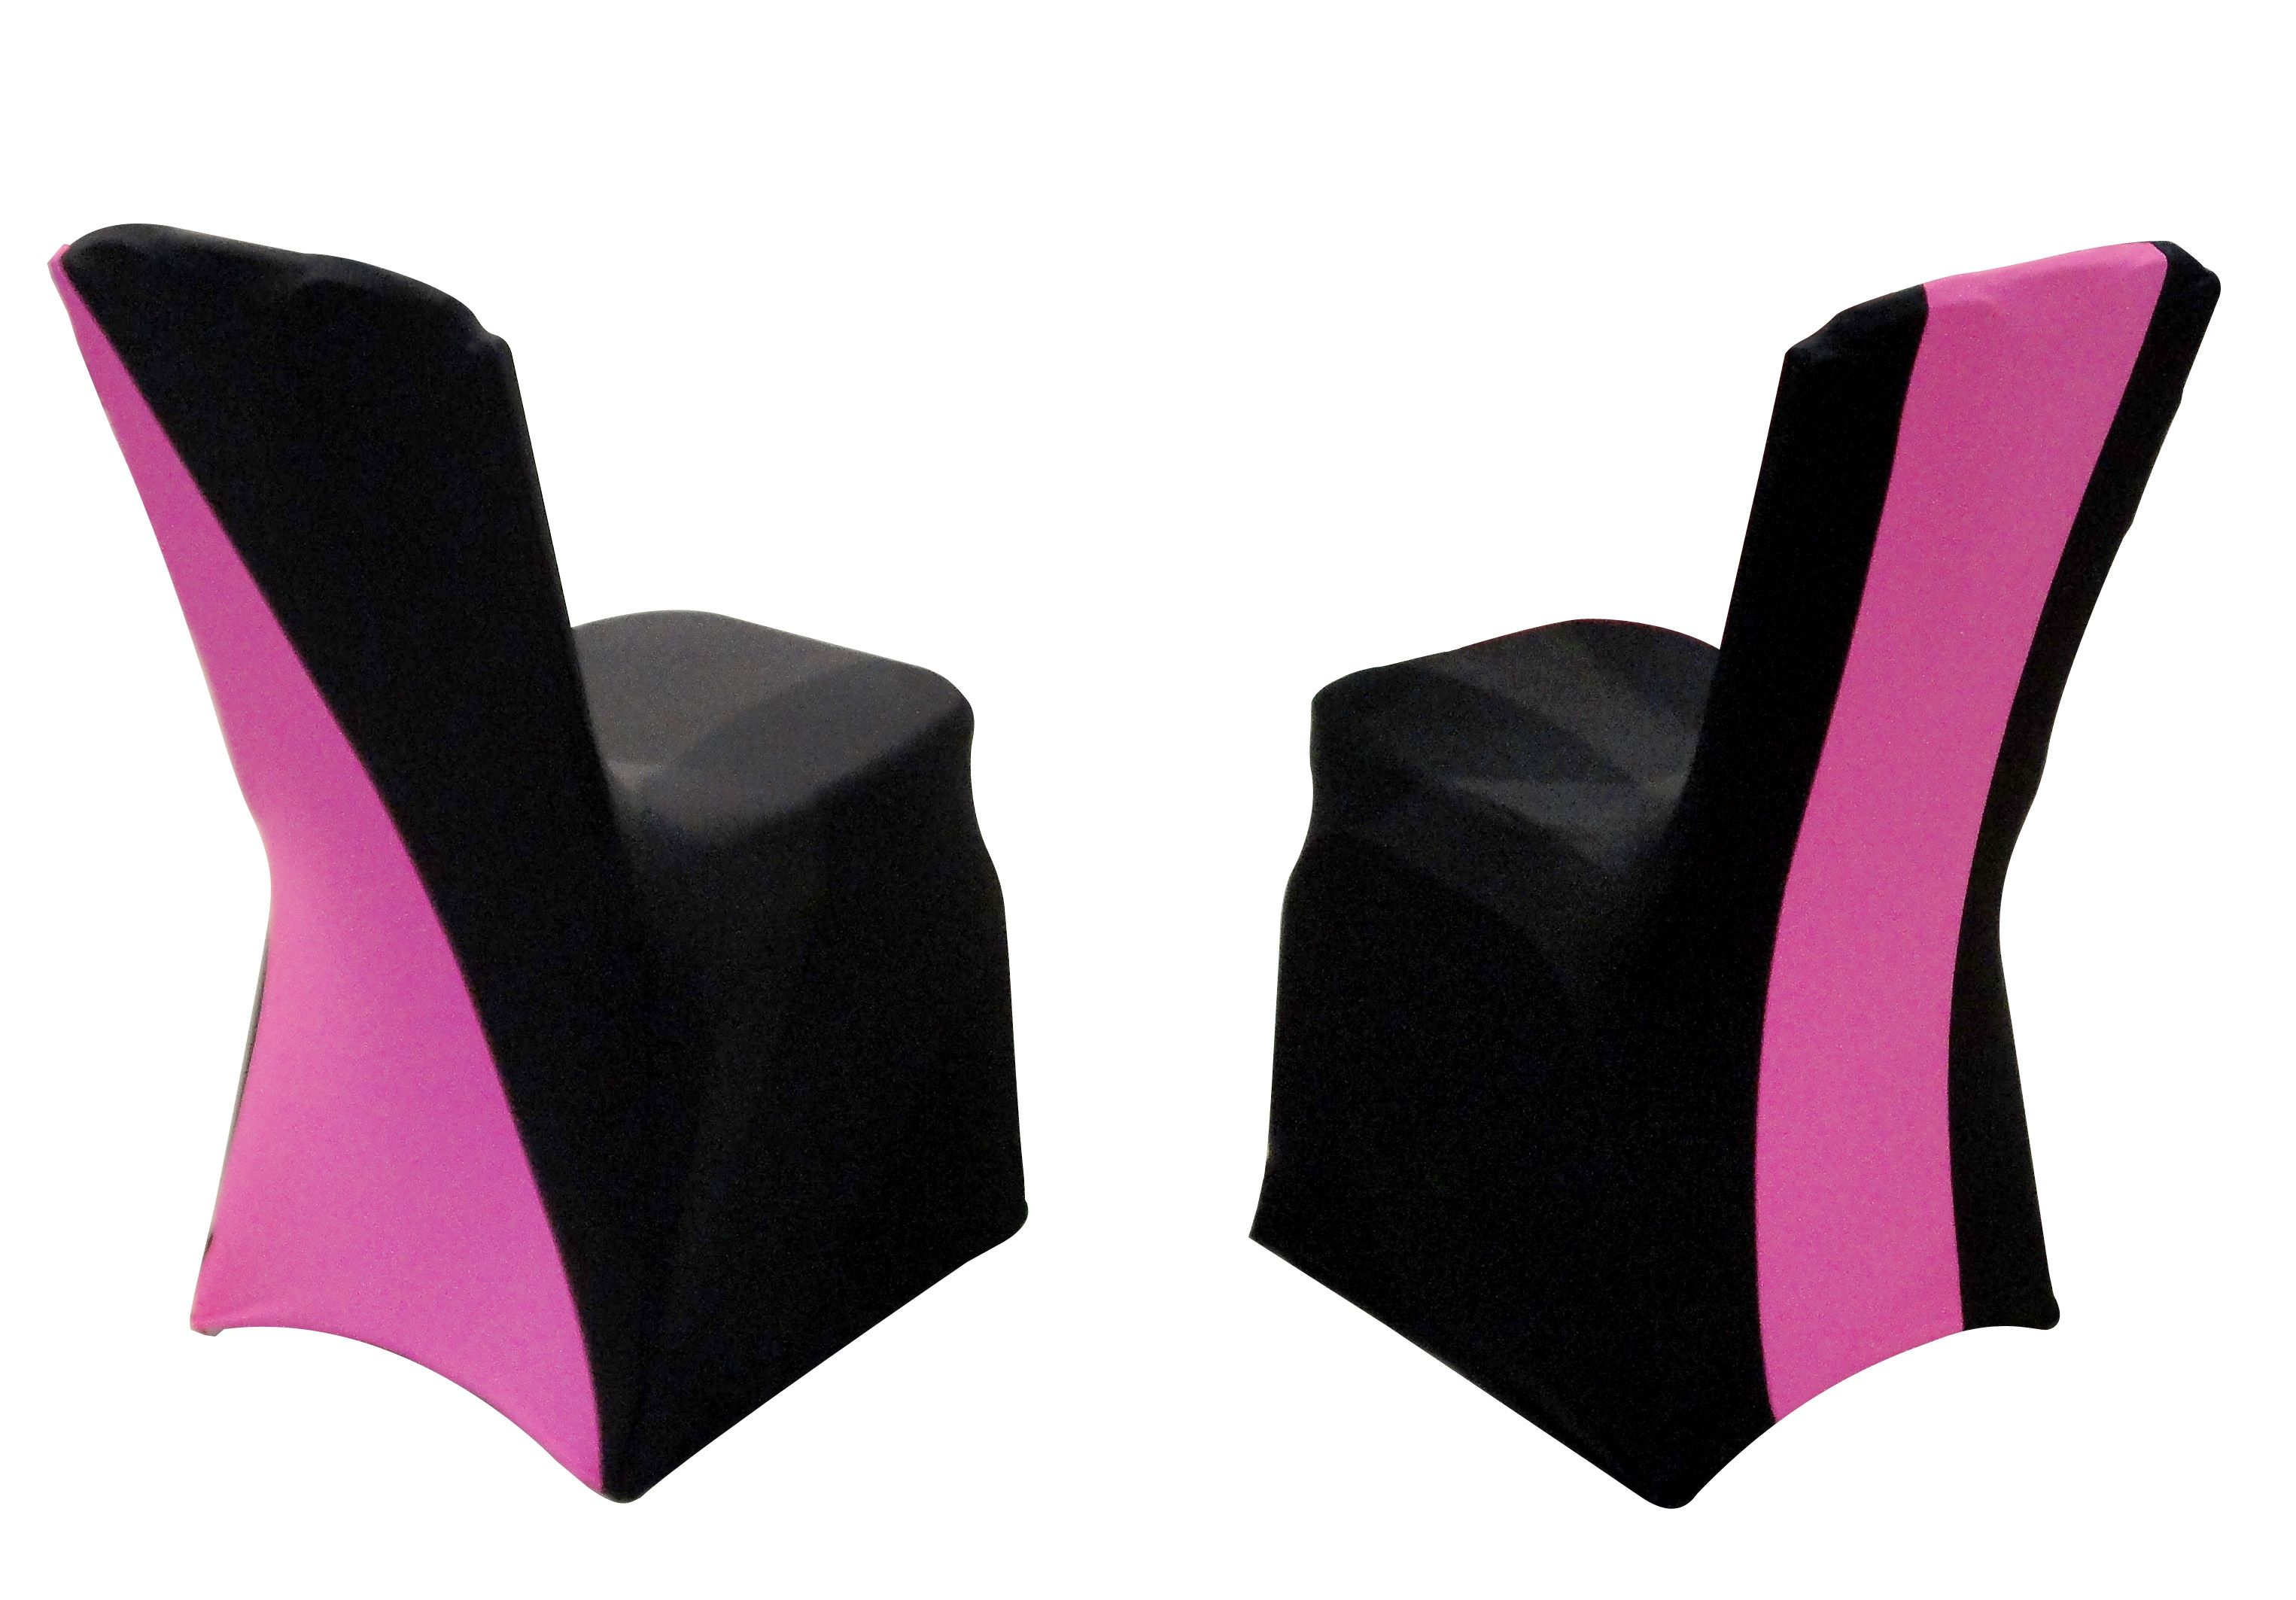 Your Chair Covers Stretch Covers Made In Durable Stretch Material To Ensure Your